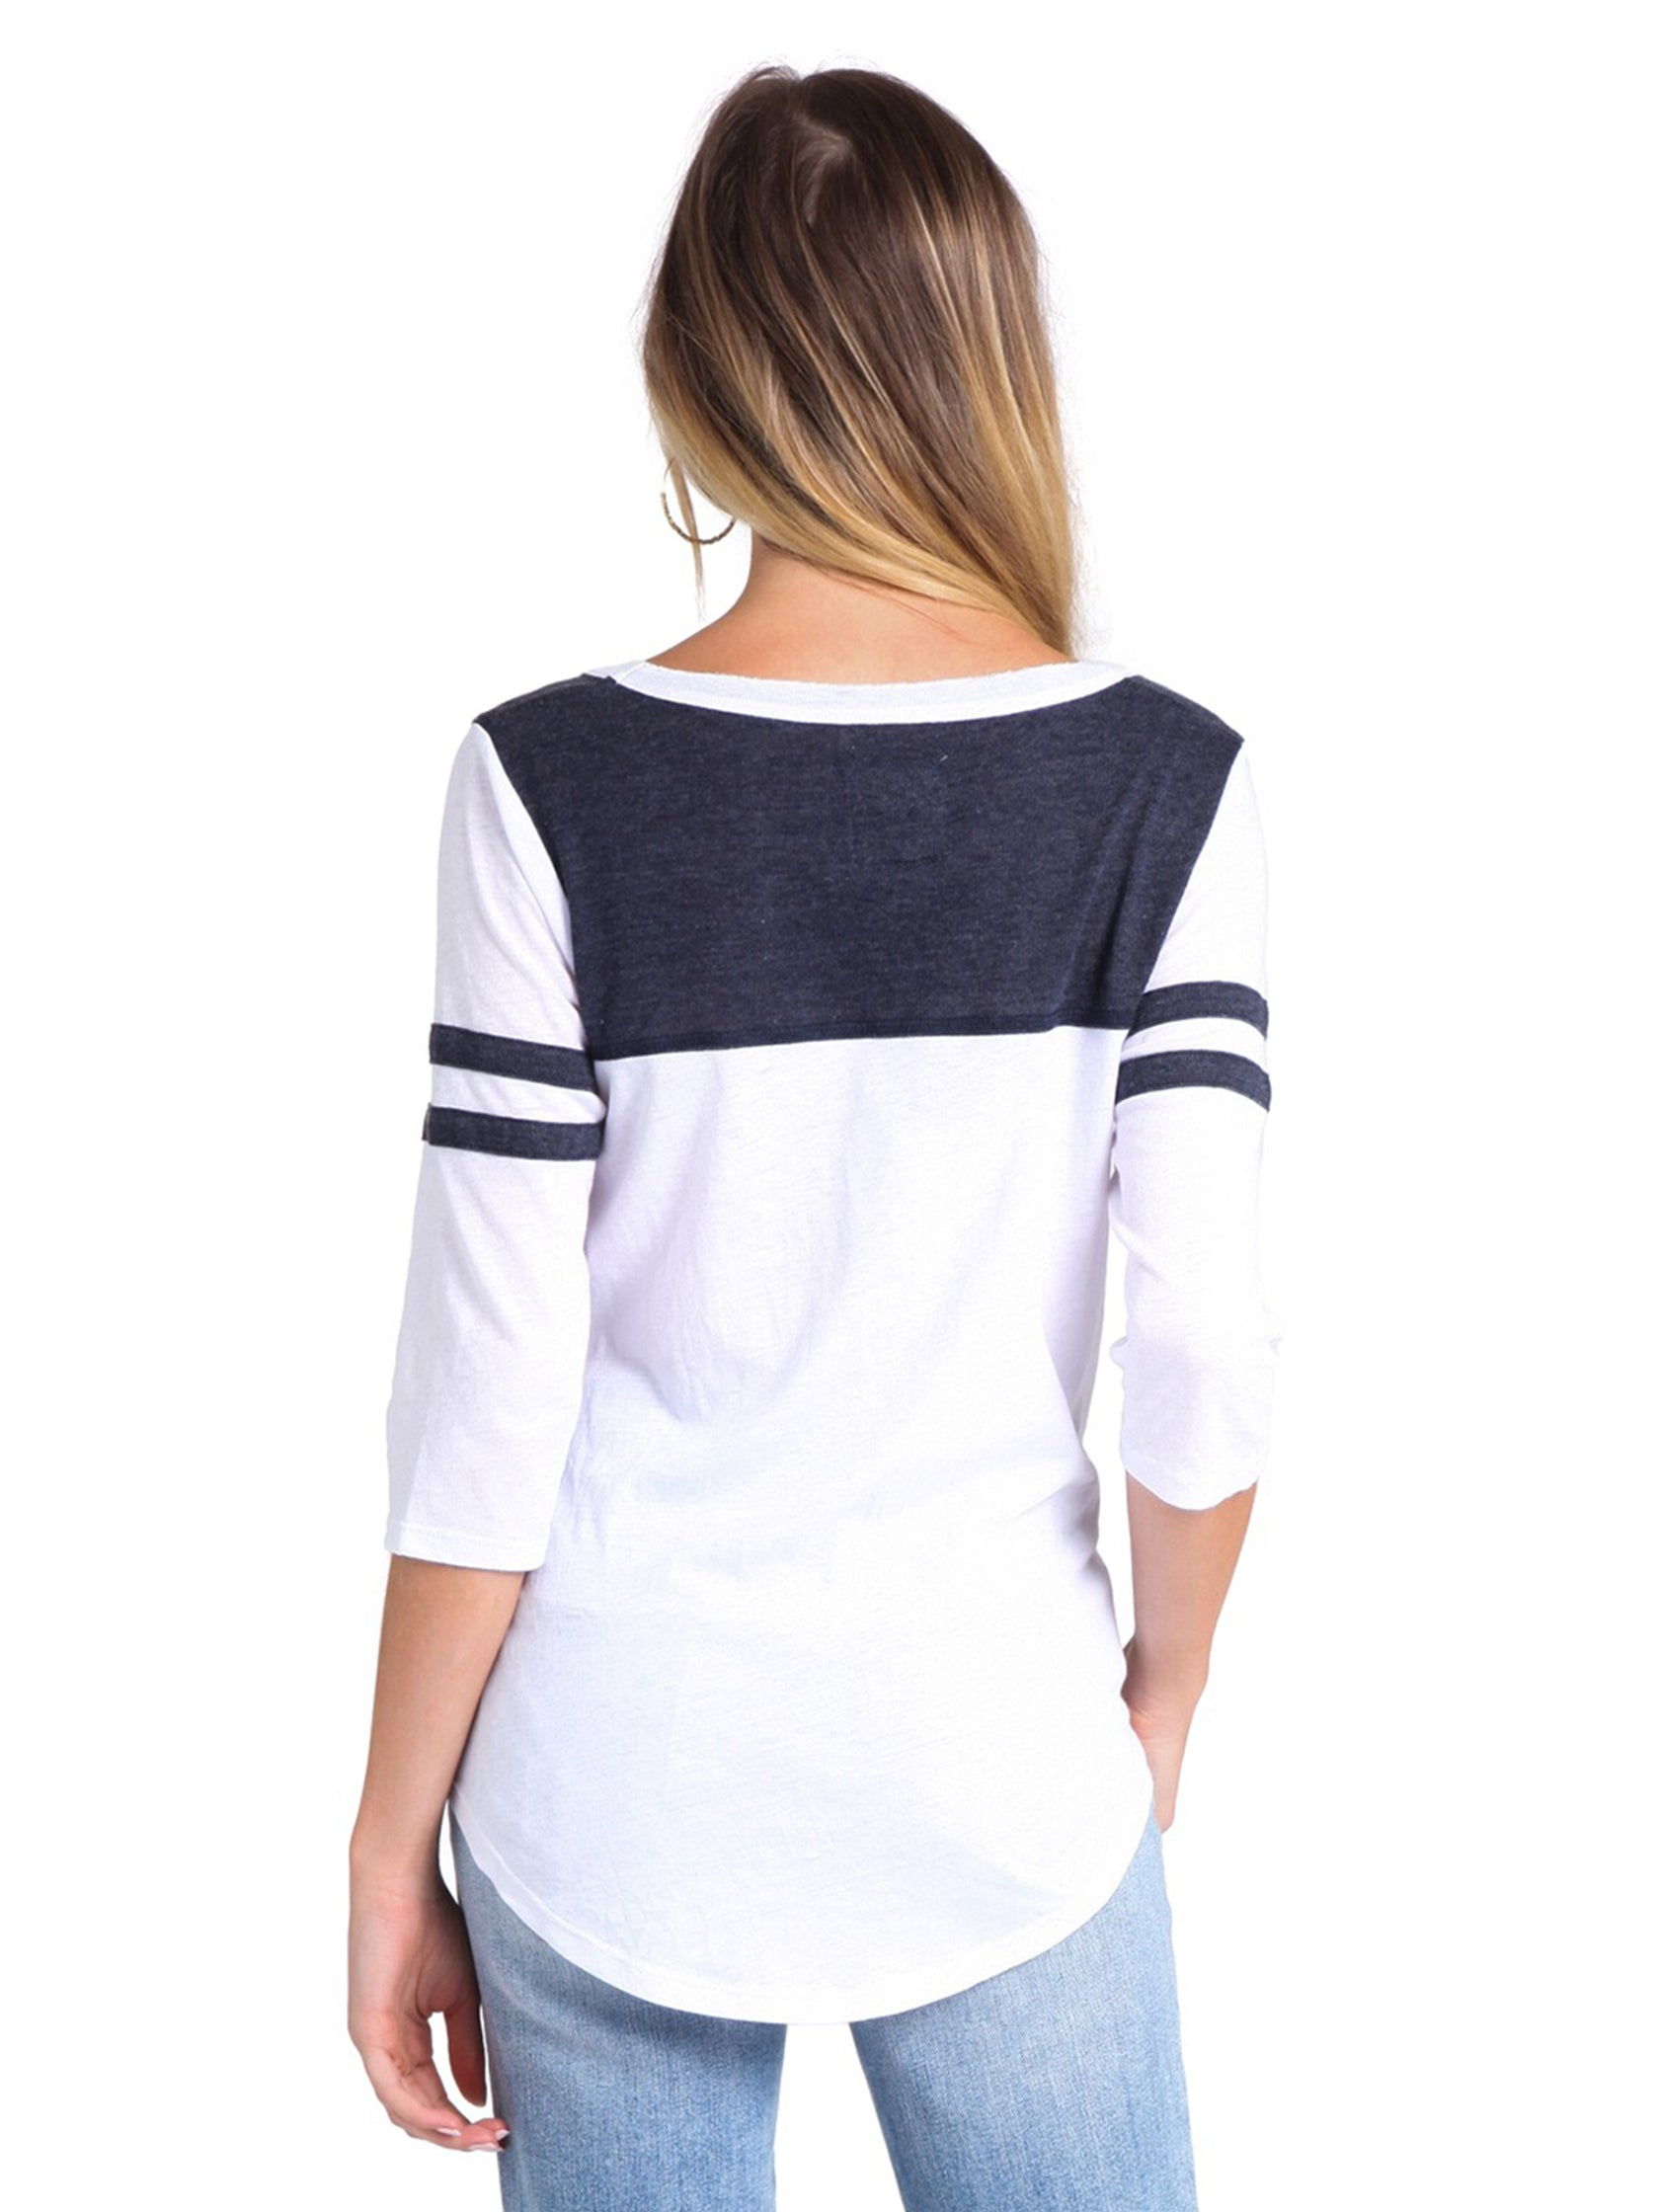 Women outfit in a top rental from Chaser called Blocked Jersey Yoke Tee